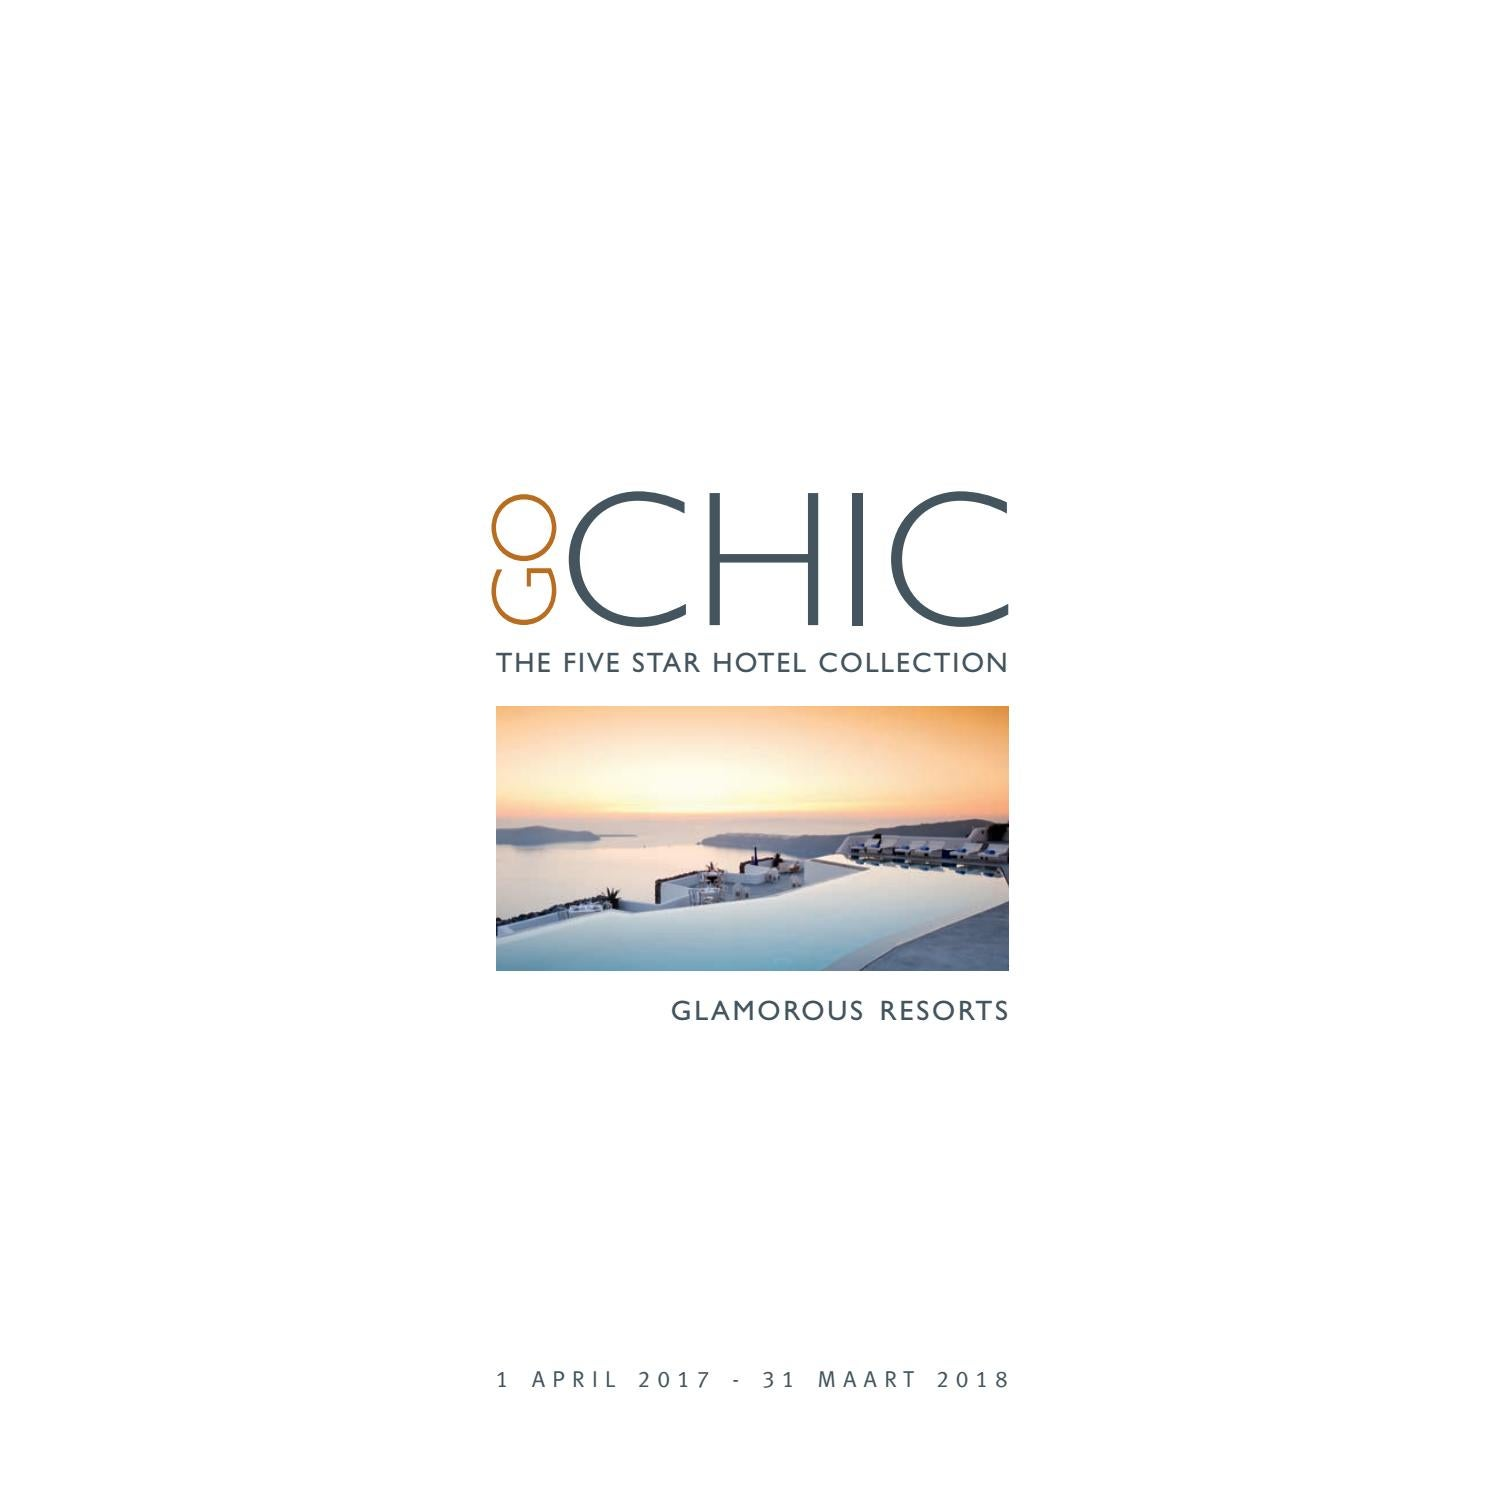 Santorini Prive Zwembad Balkon Go Chic Resorts 1718 Nl By W247 Be Issuu